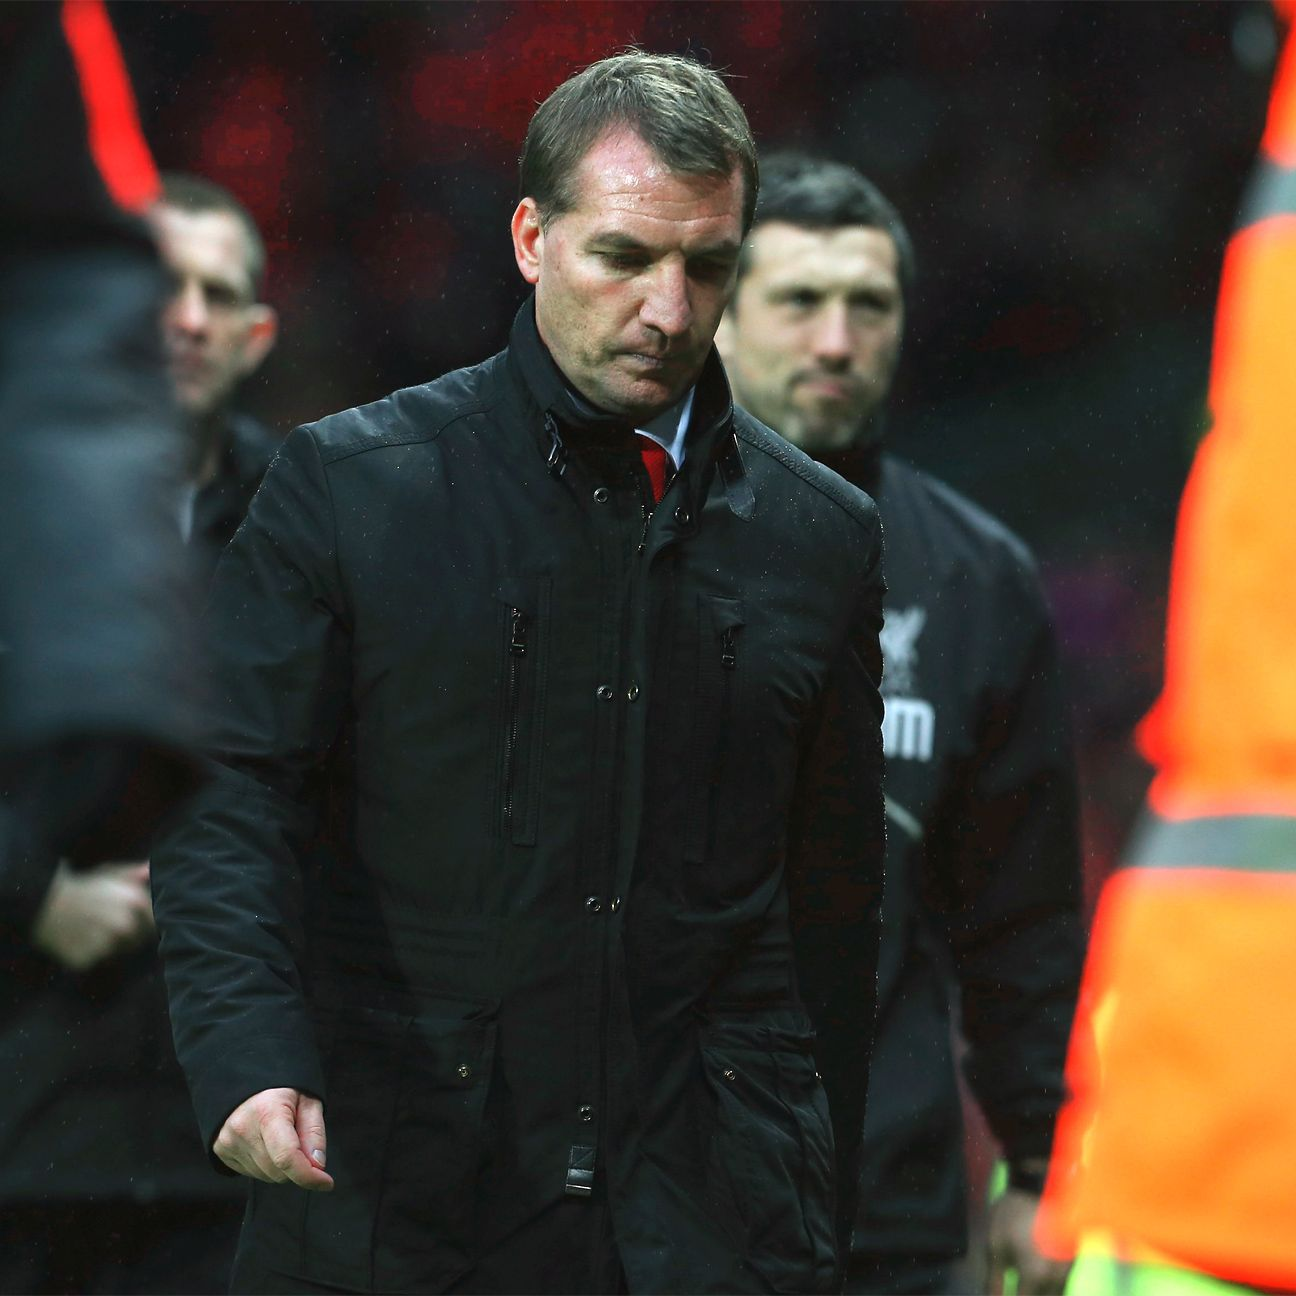 After another dismal defeat, this time to rivals Manchester United, the doubts over Brendan Rodgers's future at Liverpool continue to grow.